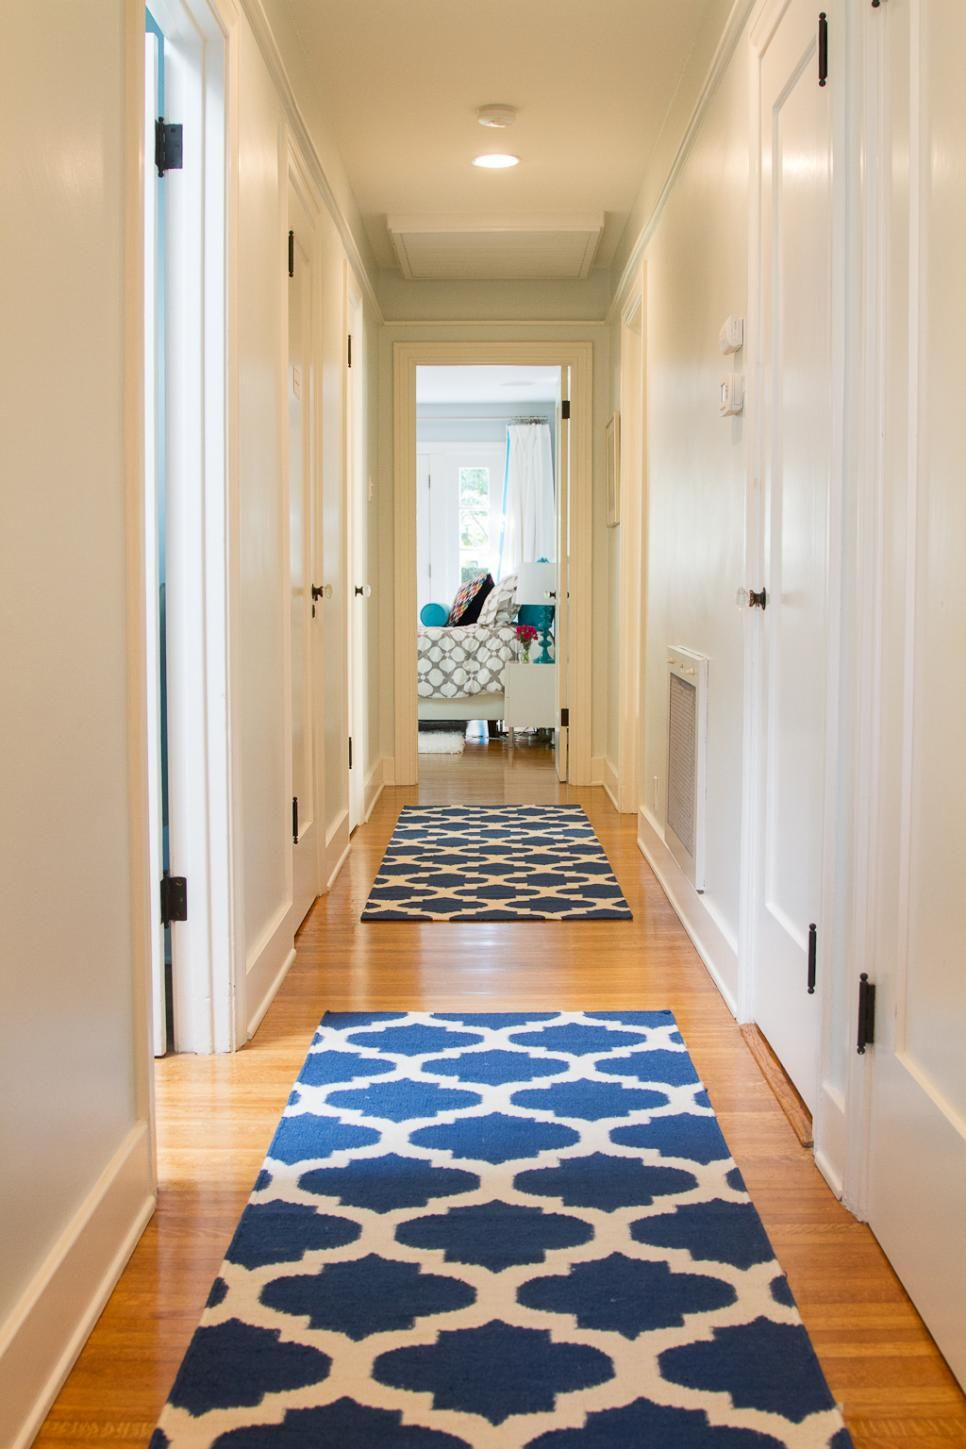 Cobalt Blue Moroccan Inspired Rugs Line This Transitional